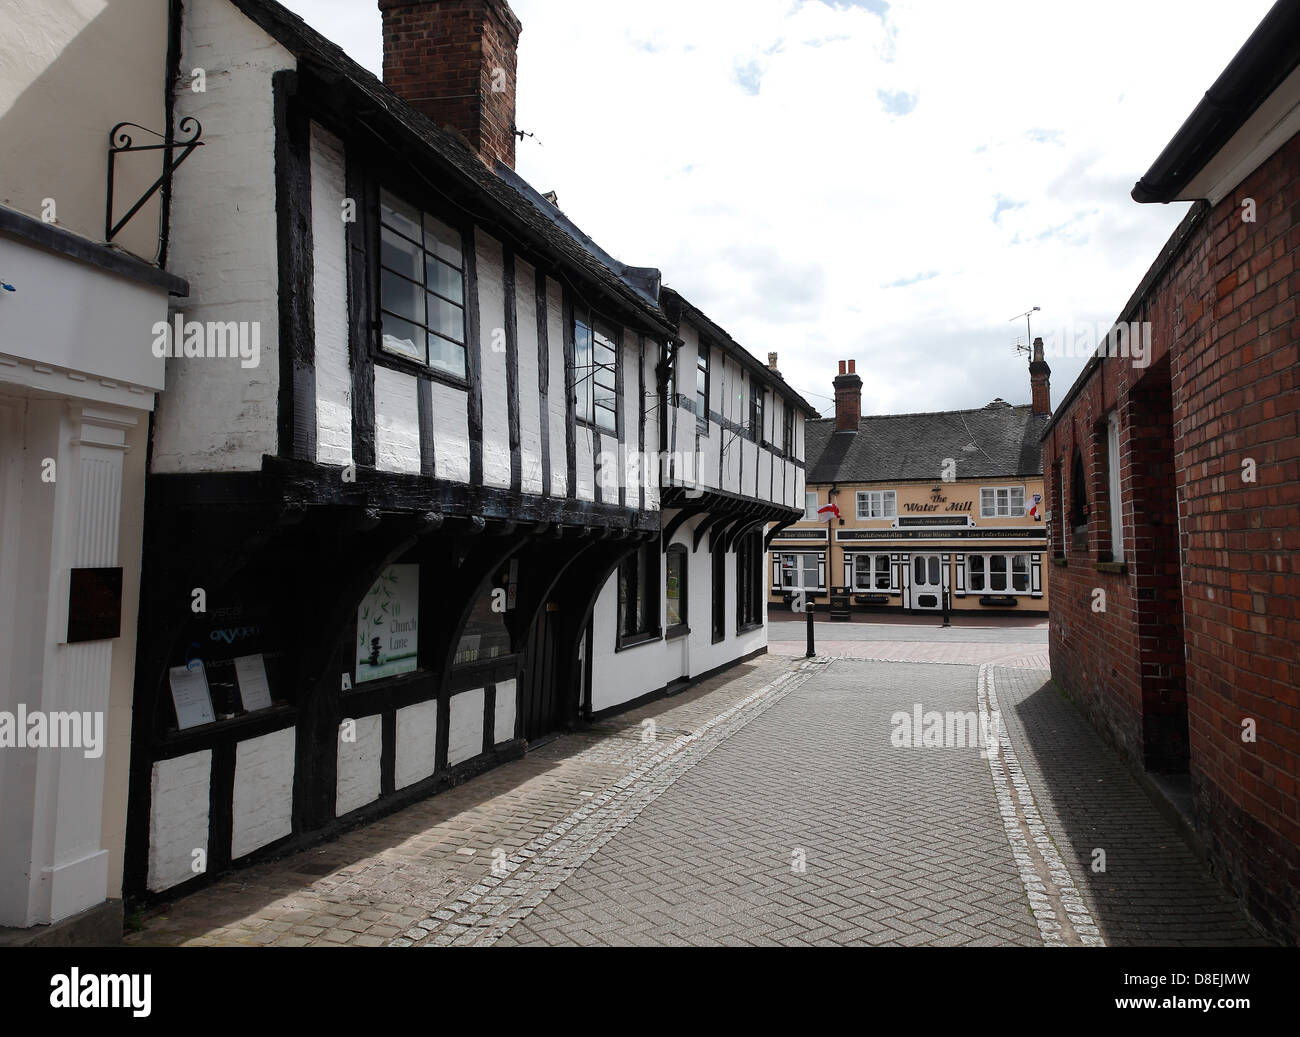 Old wood framed buildings Church Street Stafford - Stock Image